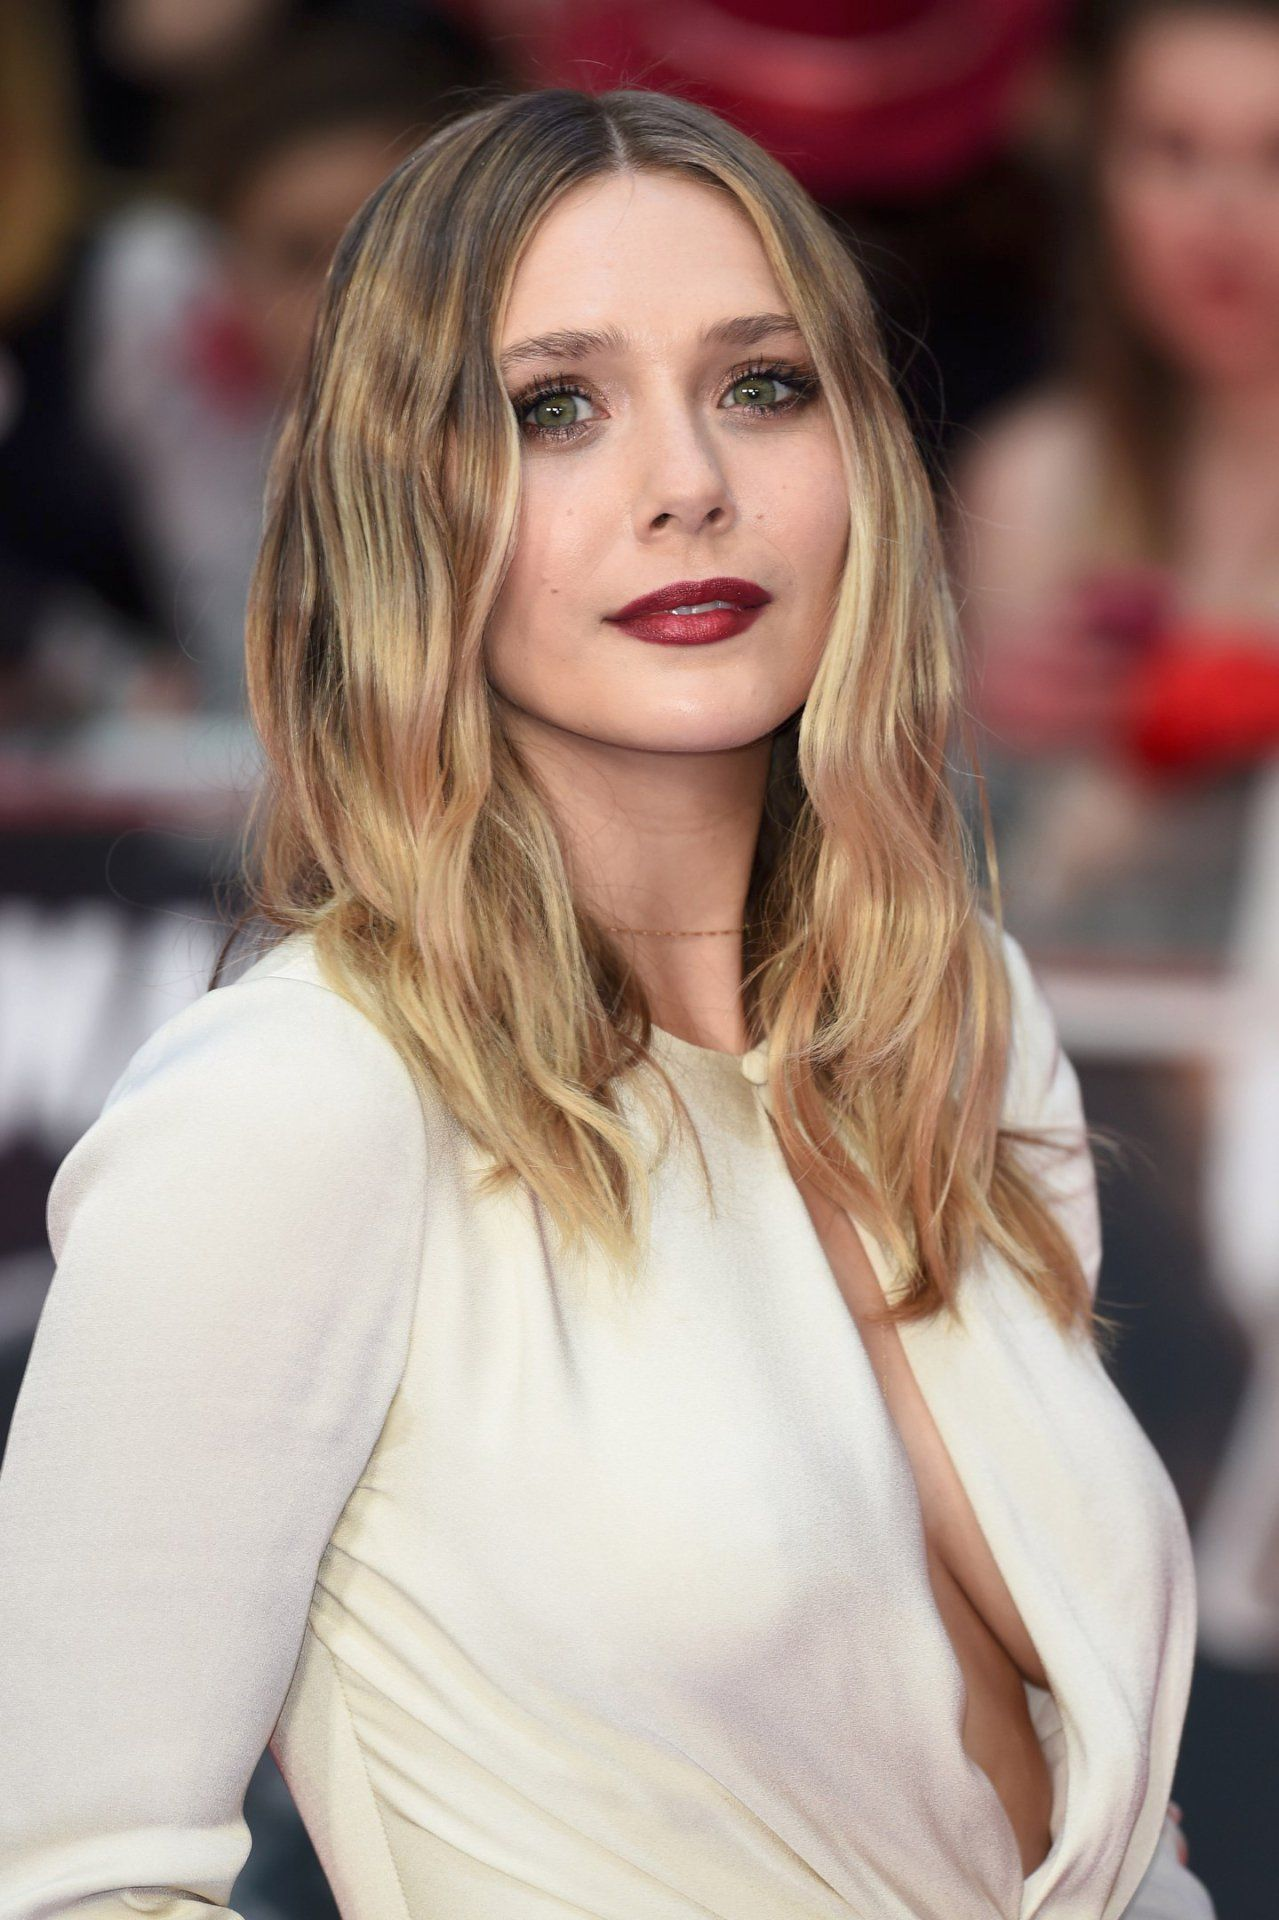 Elizabeth Olsen born February 16, 1989 (age 29) nude (24 photo), Topless, Cleavage, Feet, bra 2019